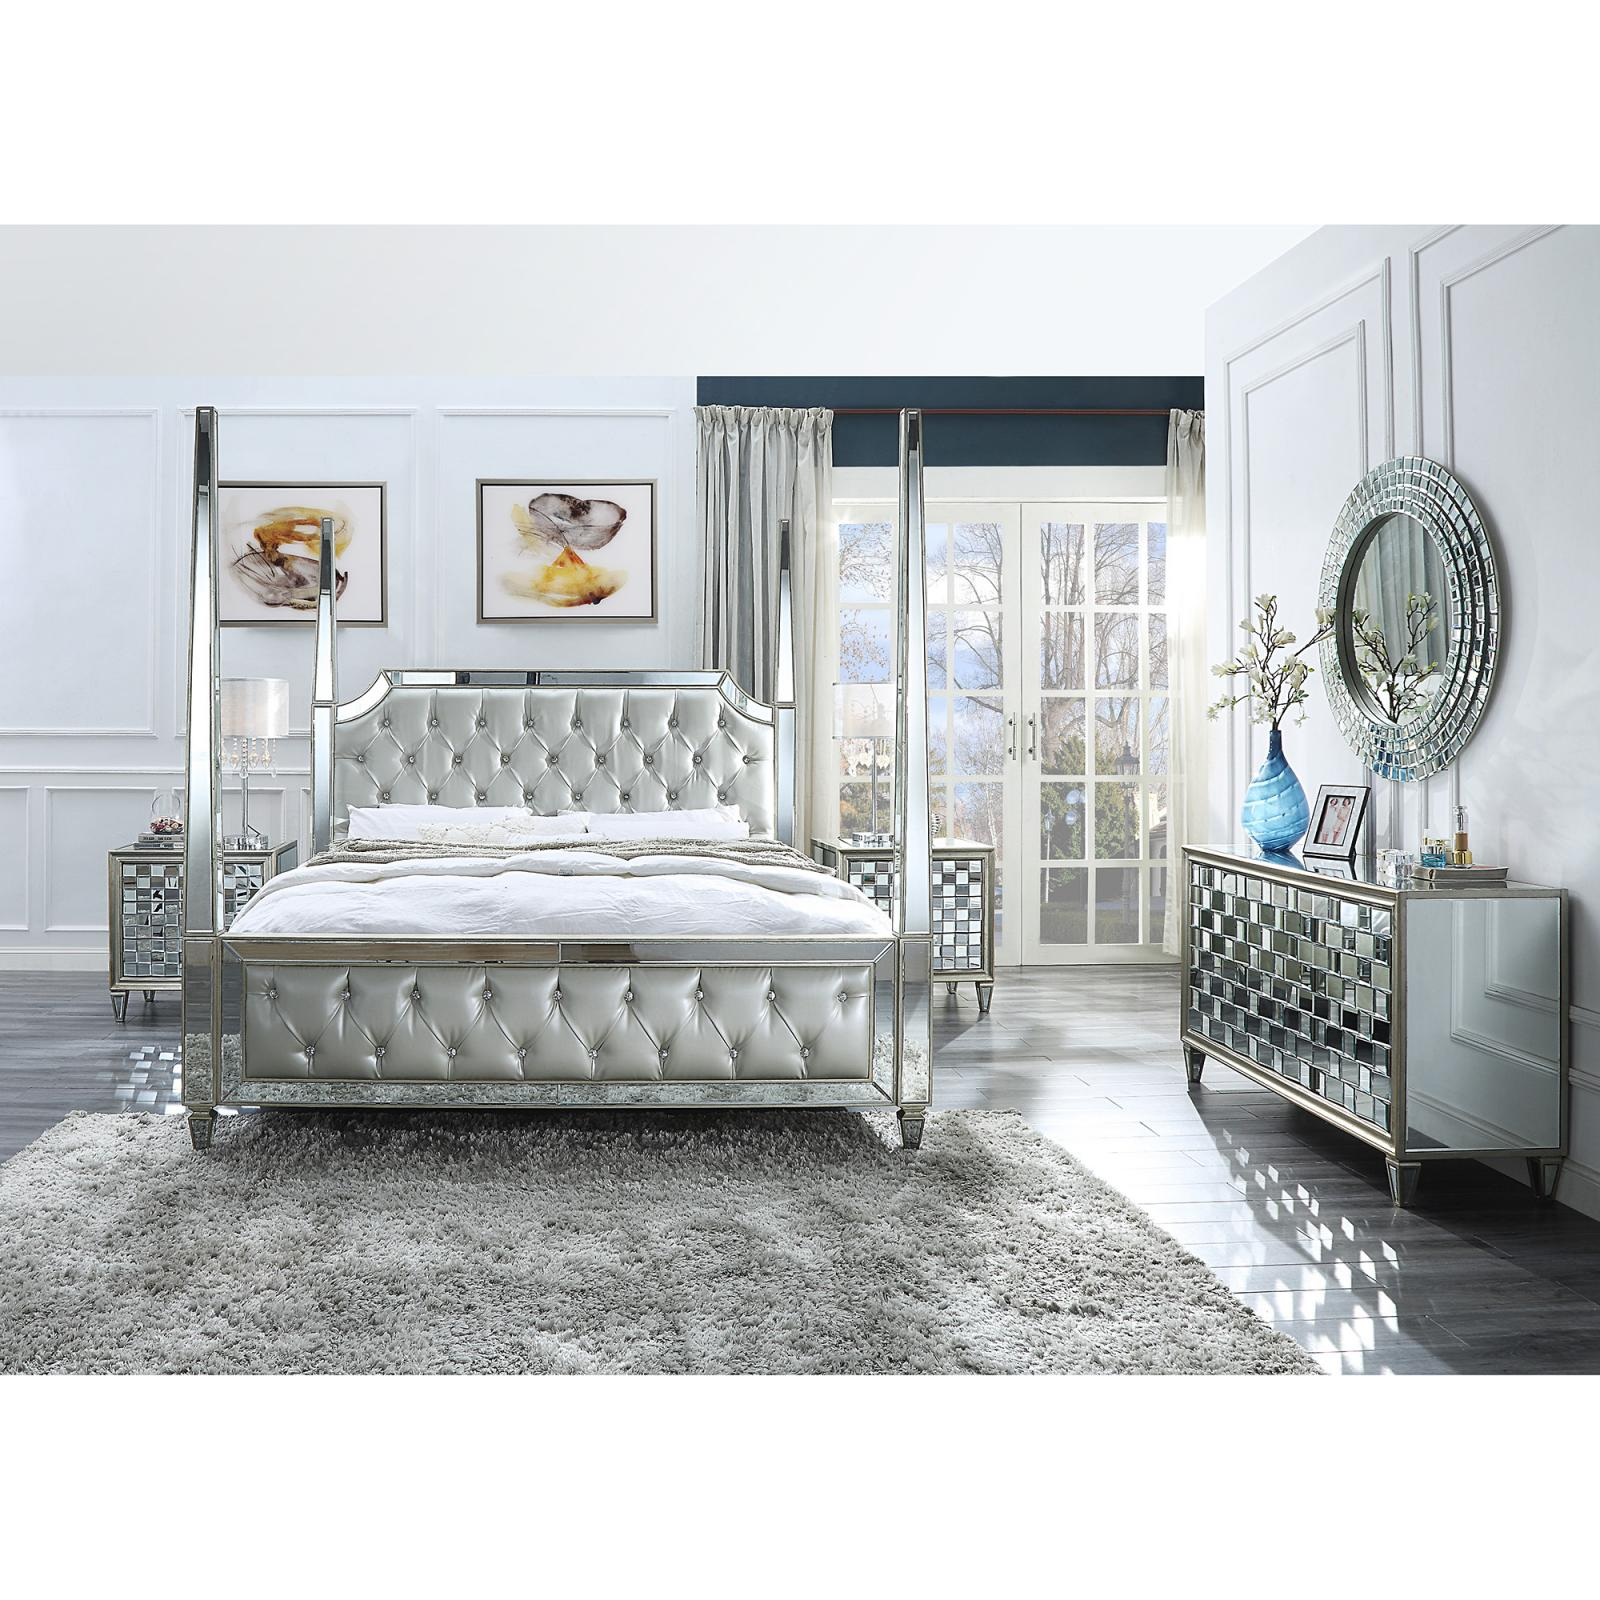 Modern Silver, Mirrored Faux Leather and Metal, Faux Leather Canopy King Bedroom Set 5 pcs HD-6001 by Homey Design